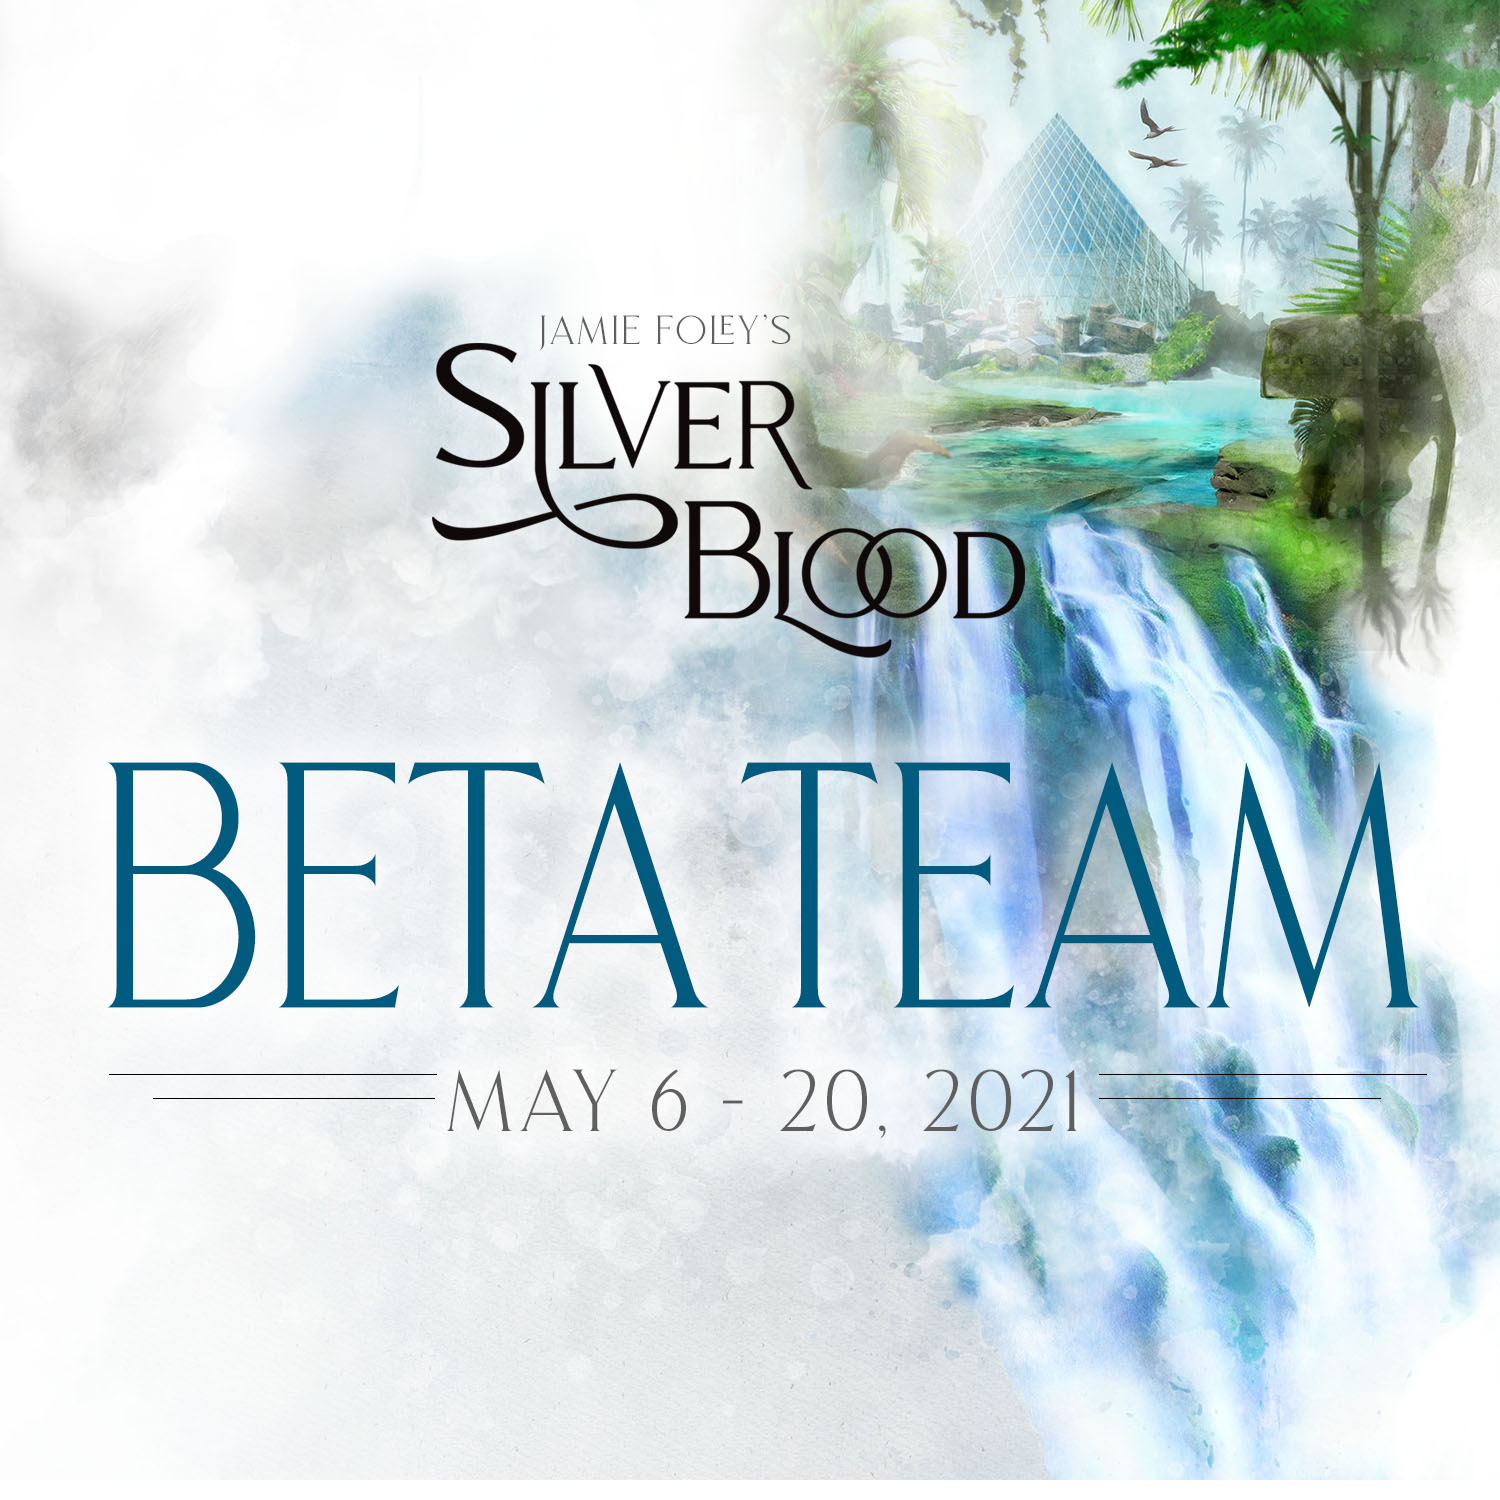 Silverblood beta team now accepting applications